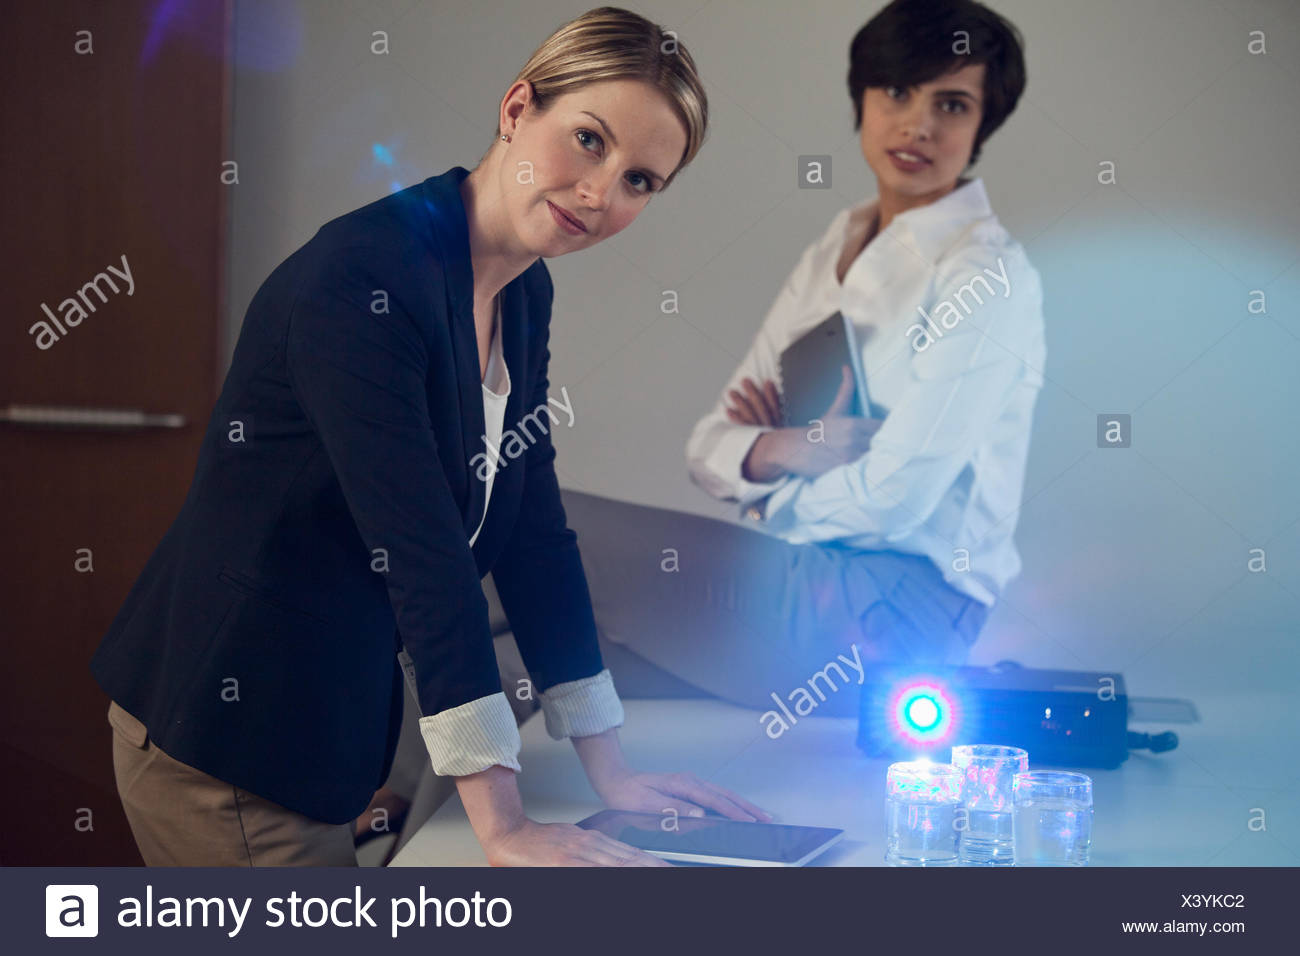 female coworkers using projector - Stock Image